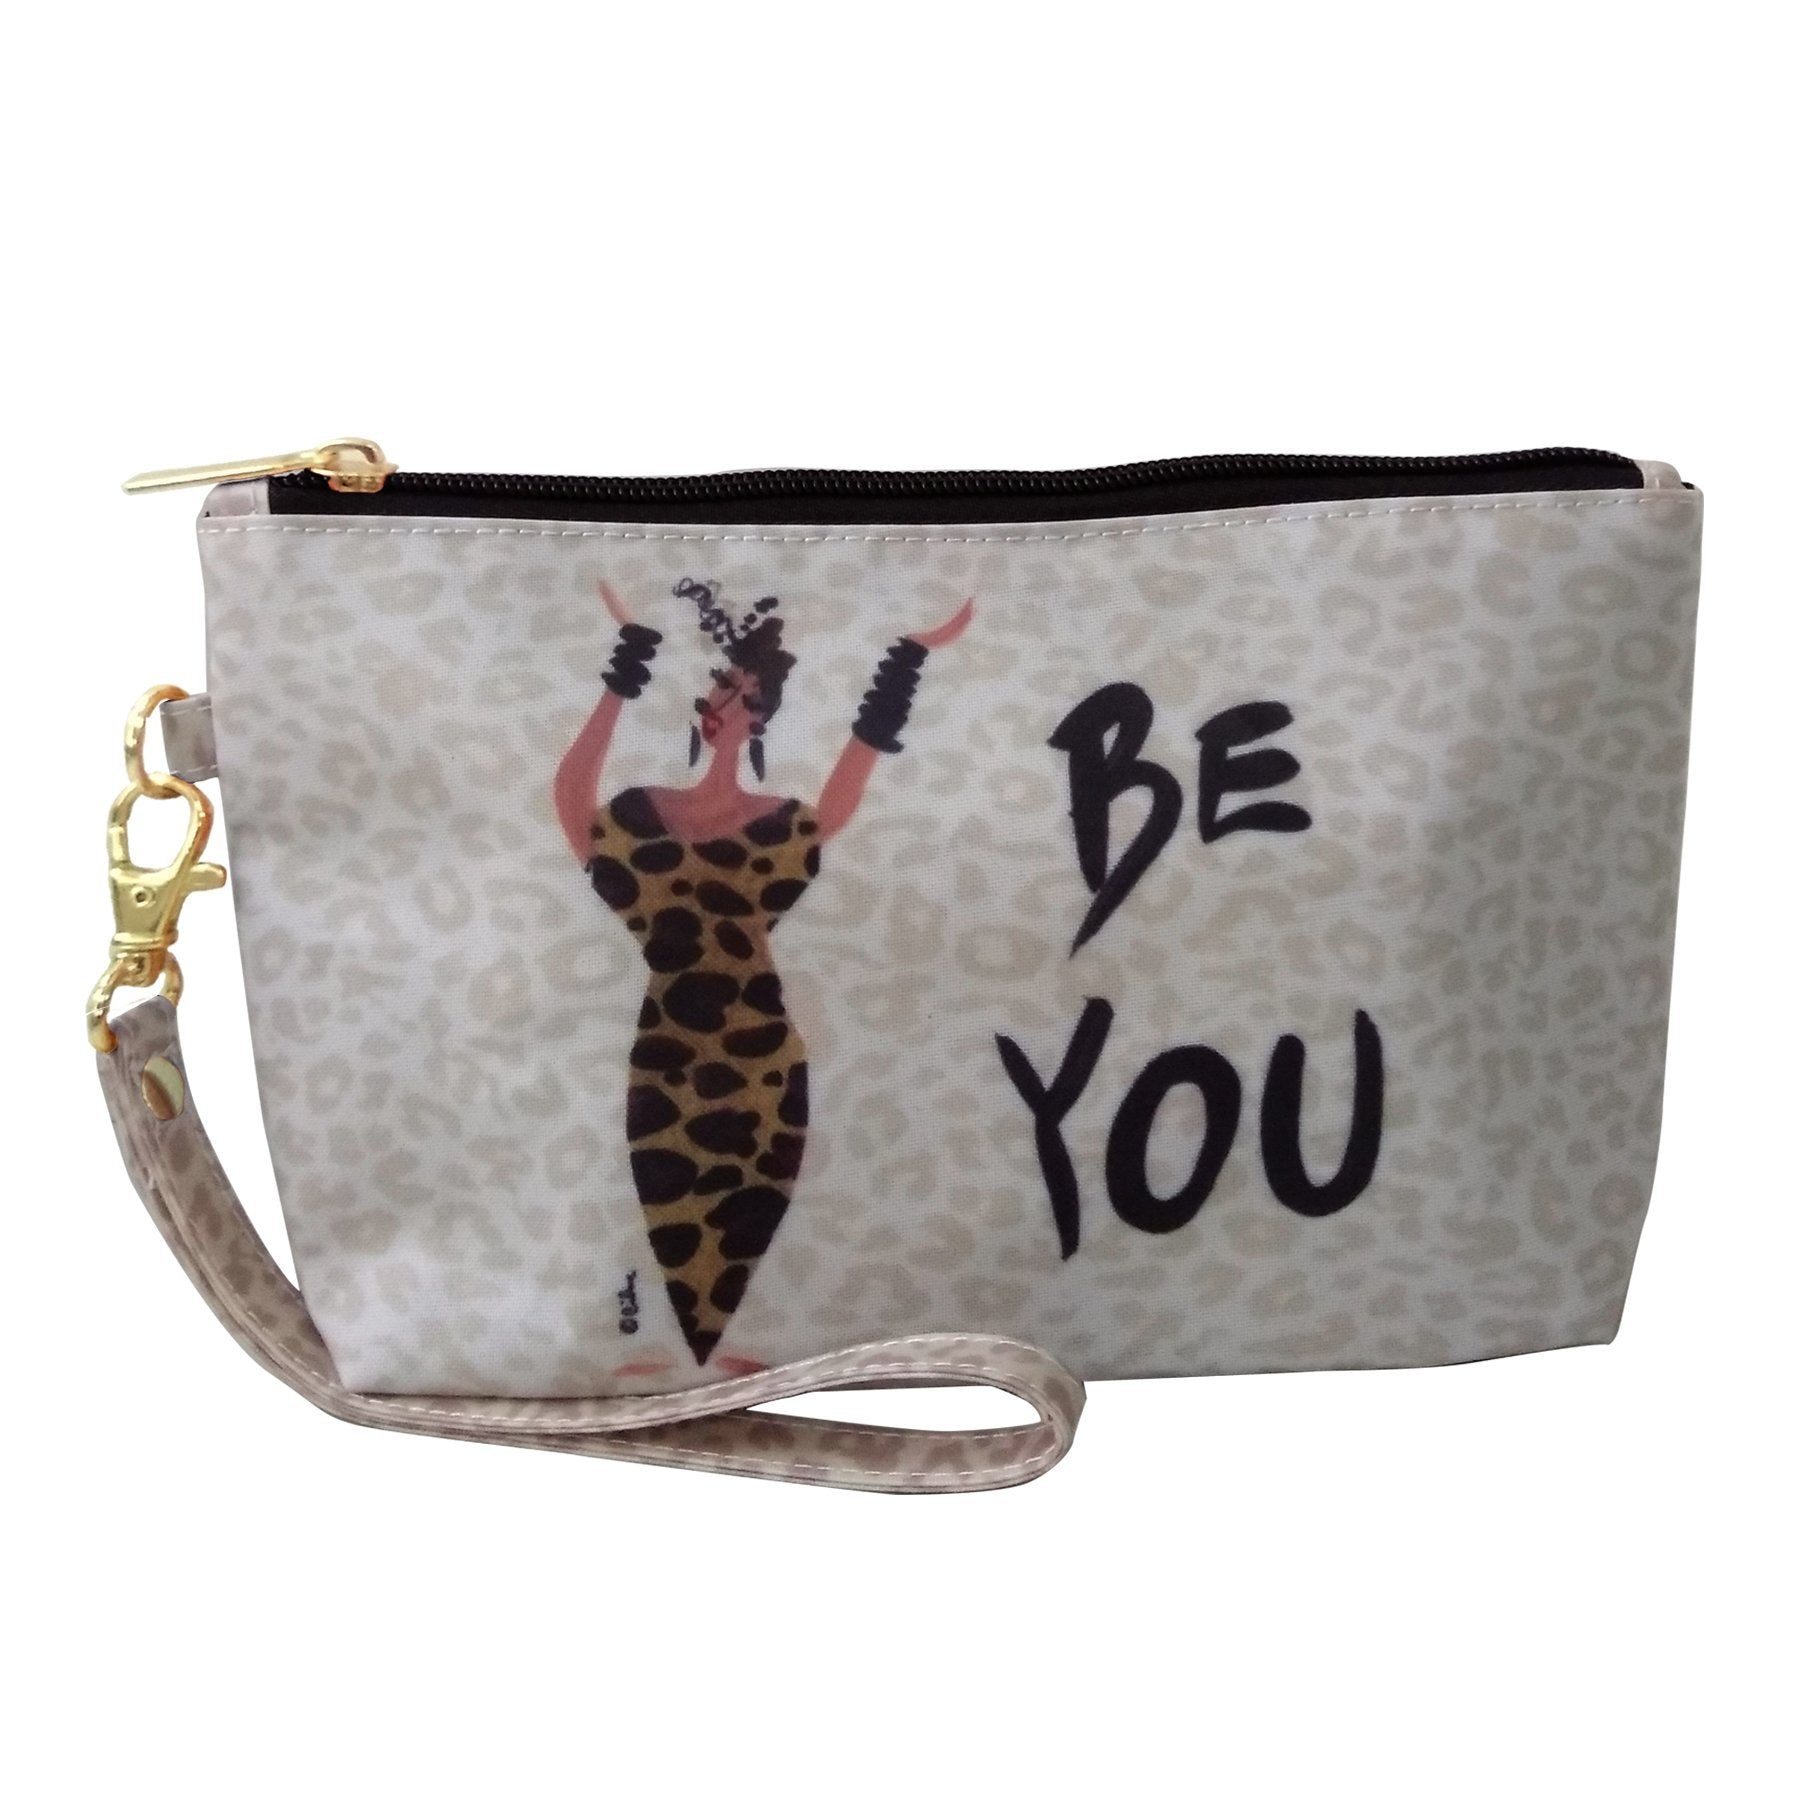 Be You: African American Cosmetic Bag by Cidne Wallace